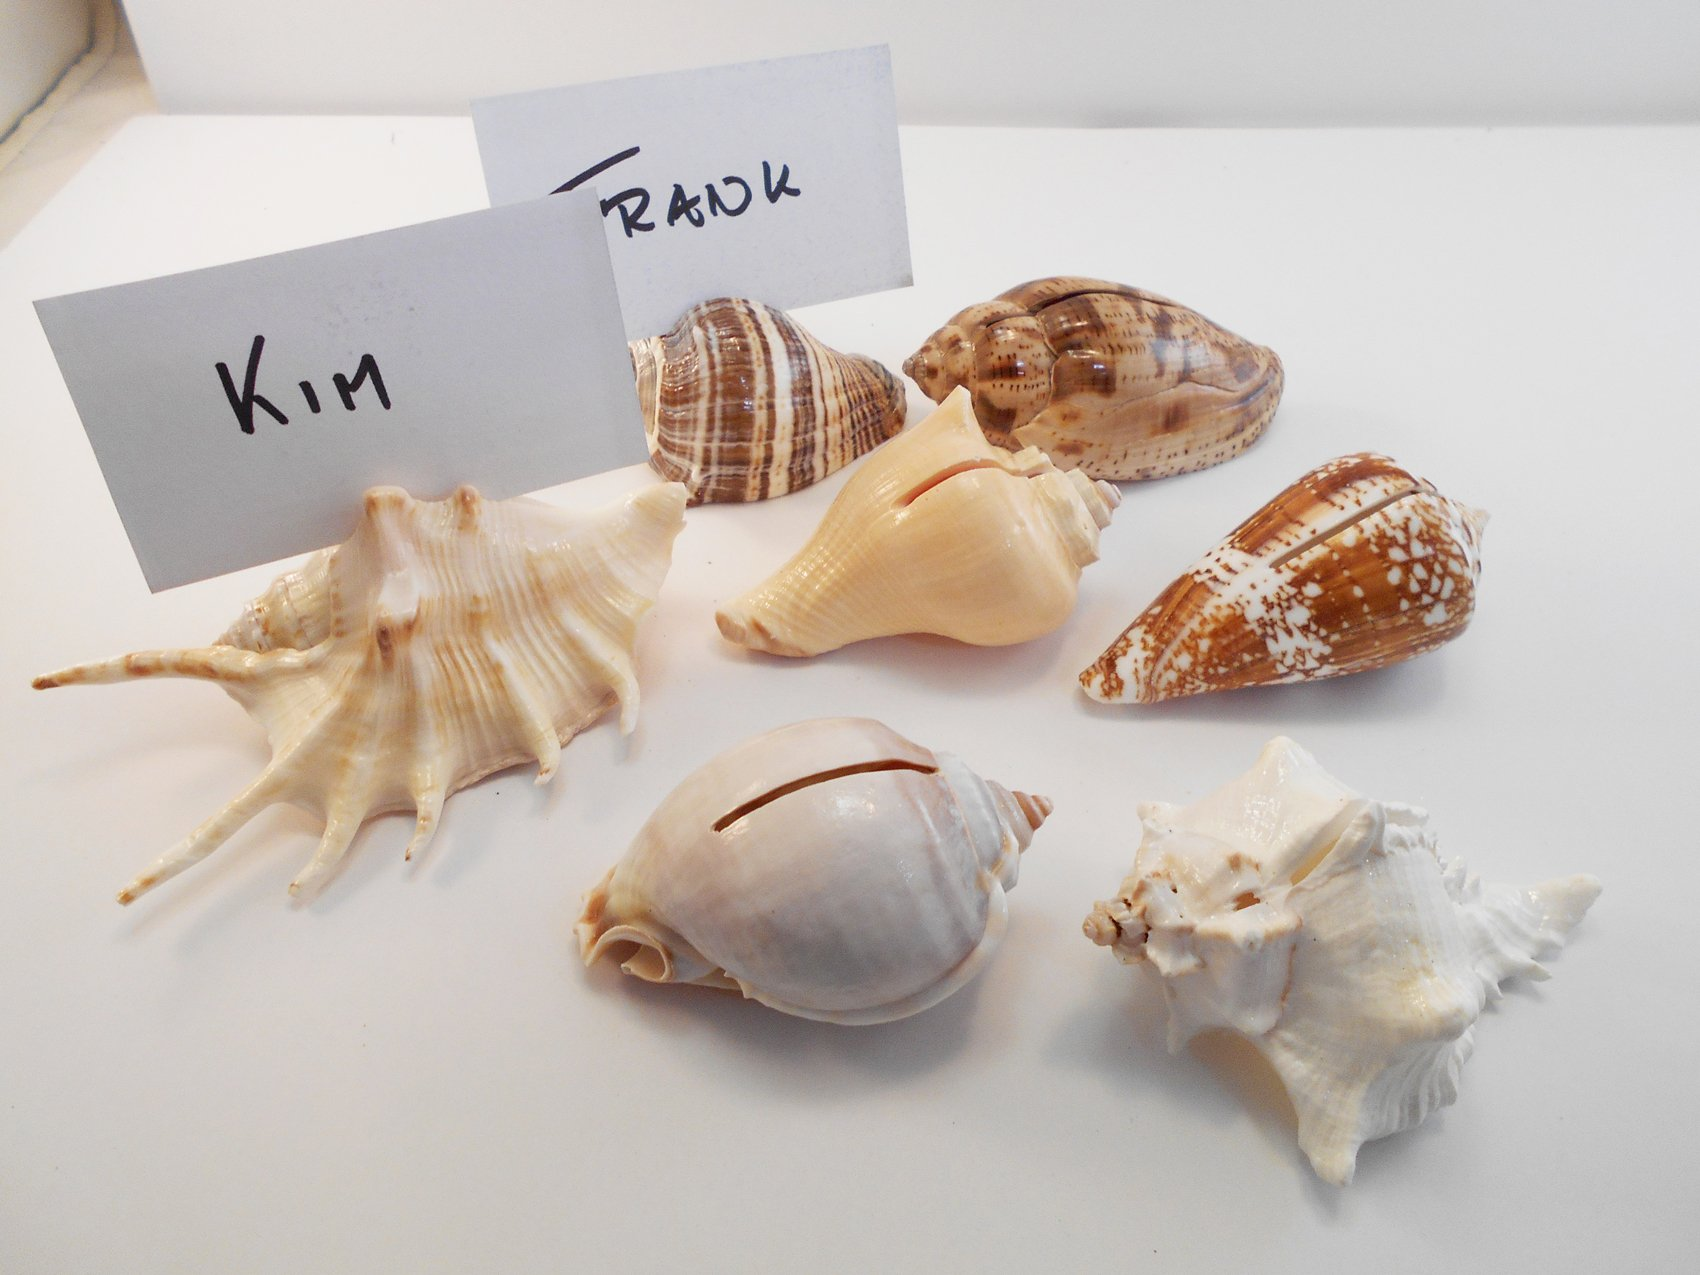 Set of 24 Genuine Seashell Place Card Holders Beach Wedding Favor Nautical Party Decor Sea Shell Table Sets